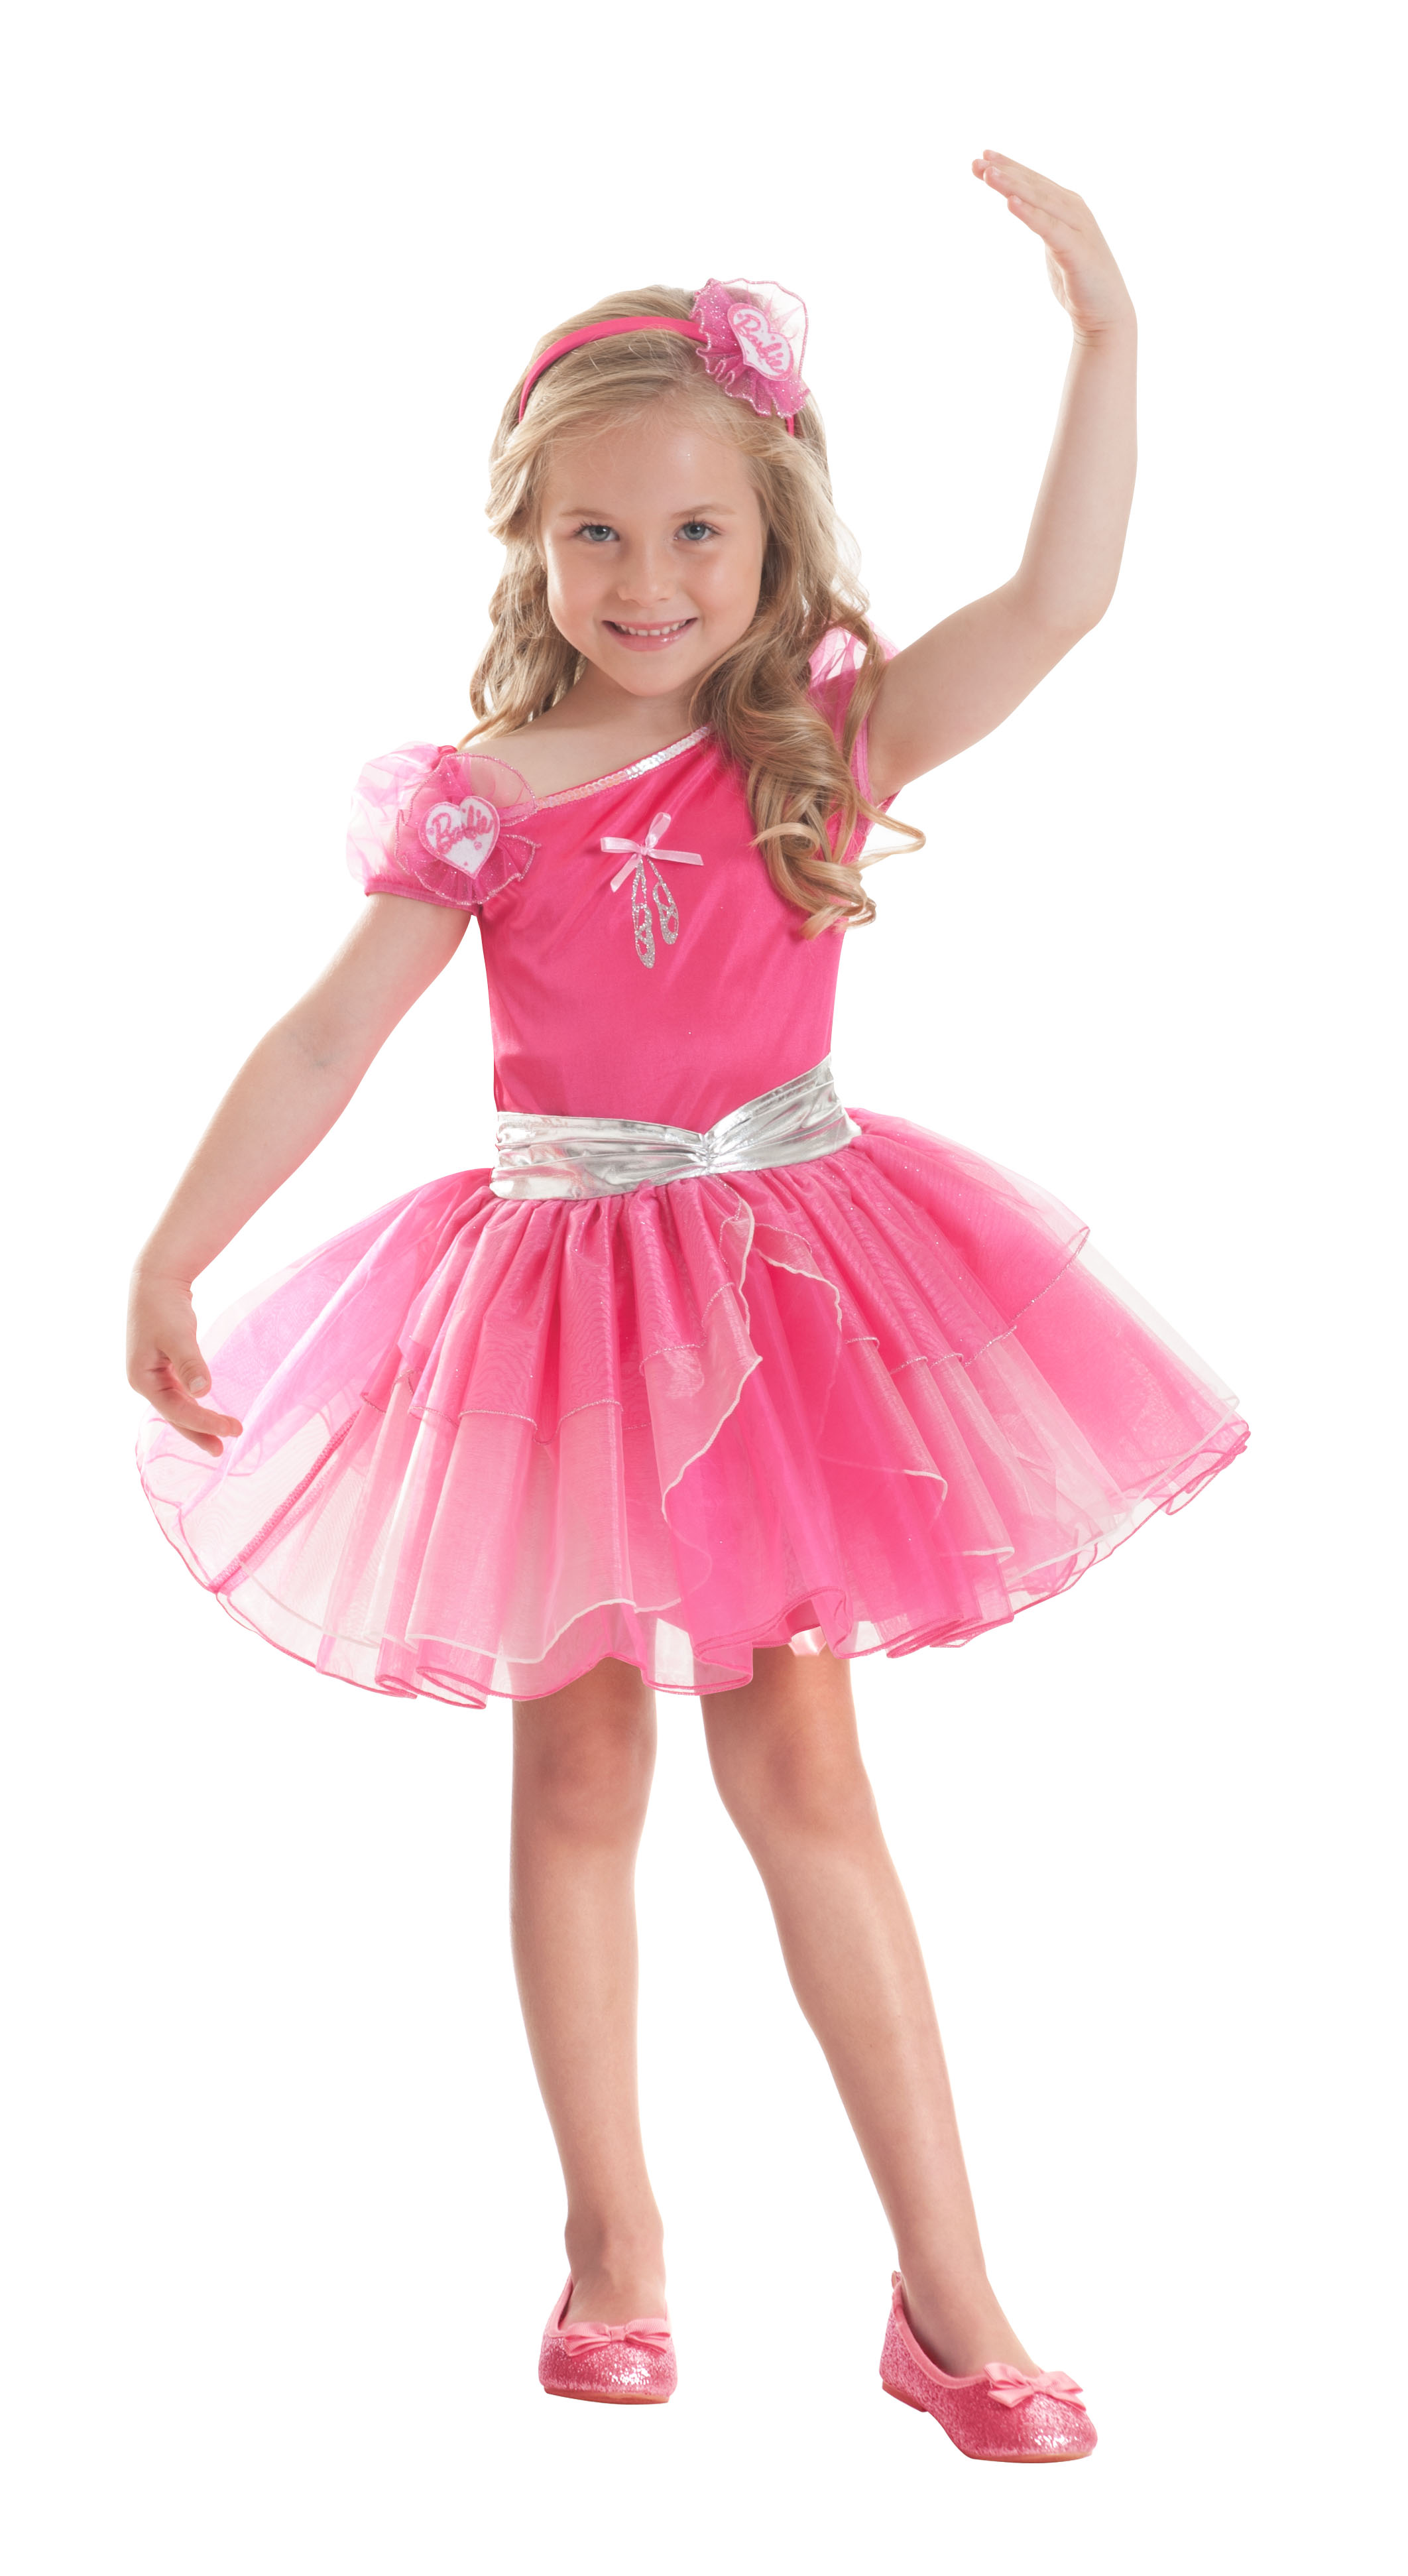 Ballerina Costume For Kids With Point Shoes